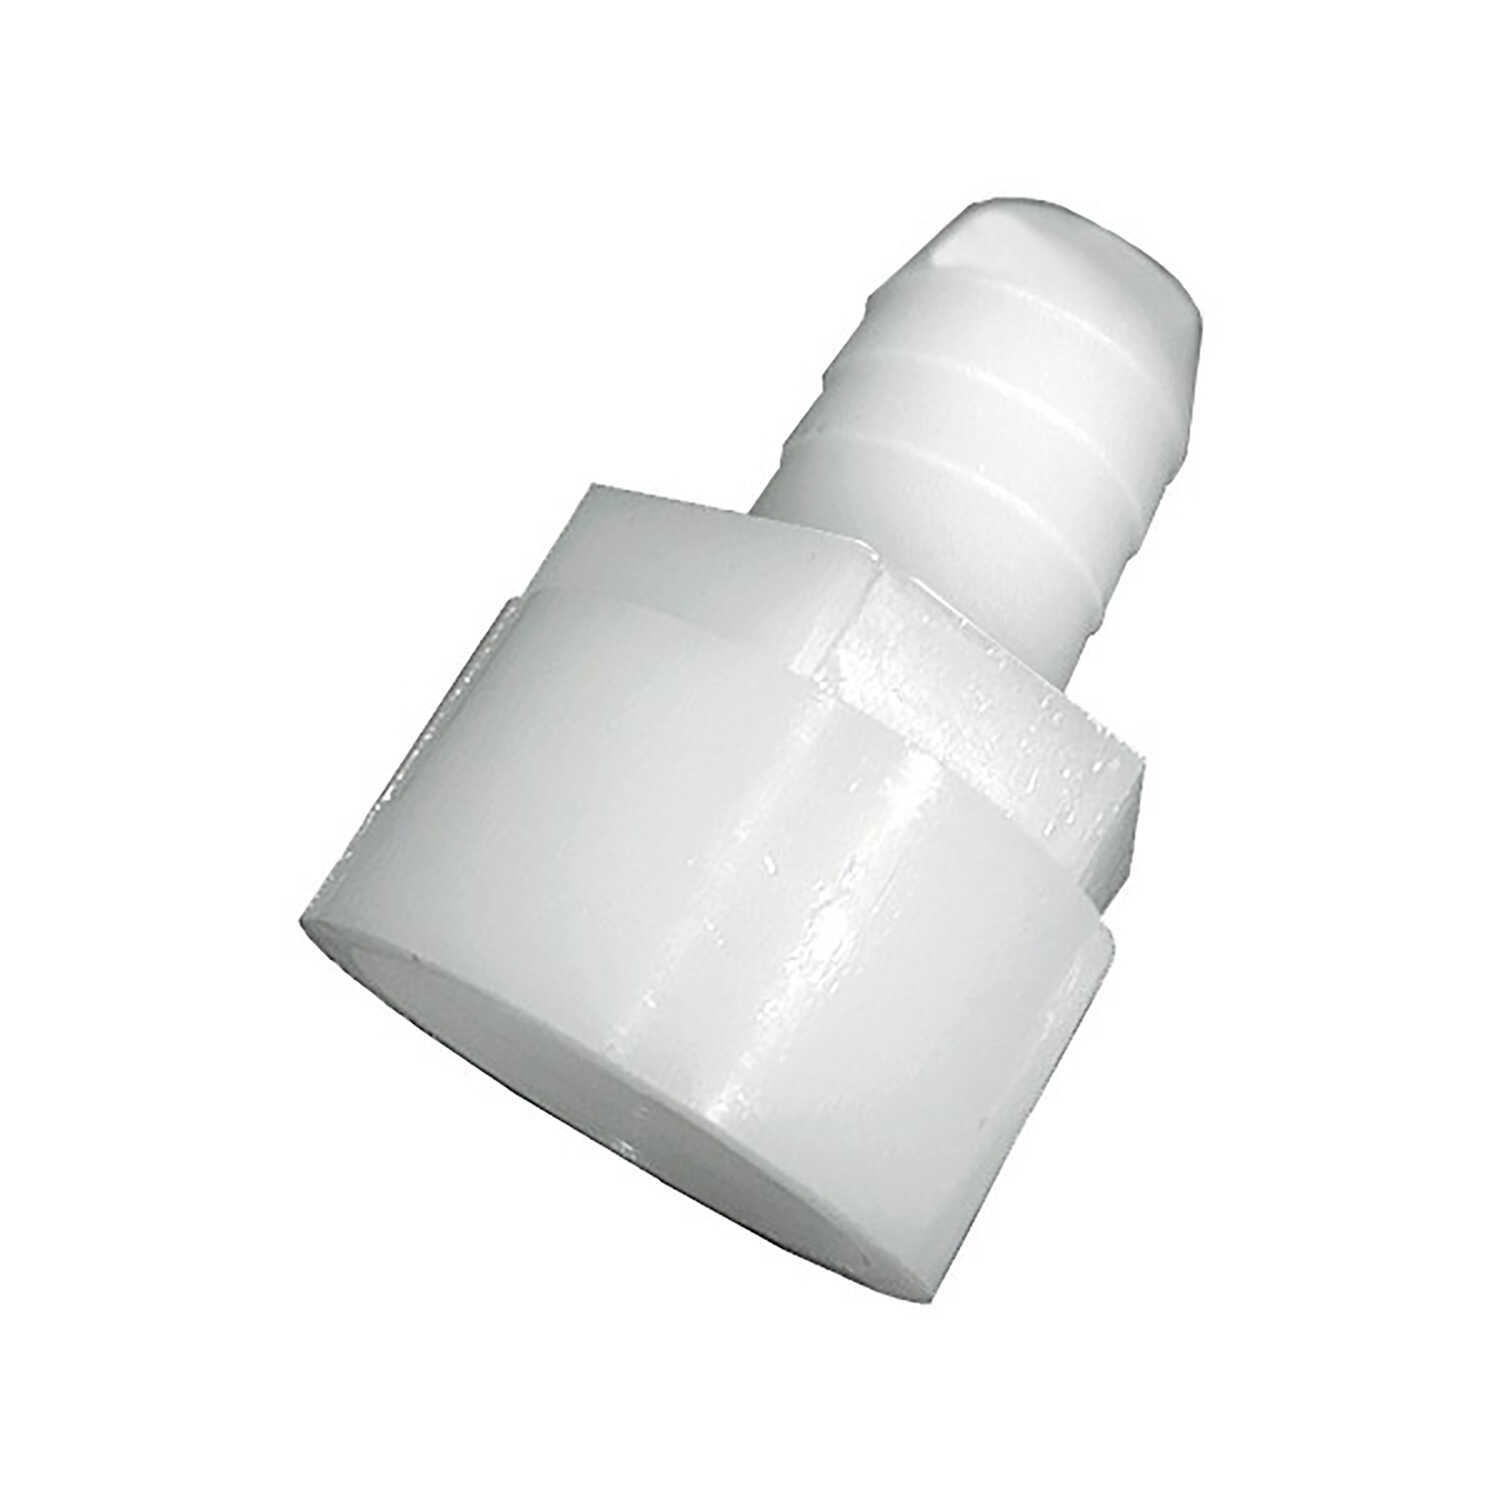 Green Leaf  Nylon  Adapter  3/8 in. Dia. x 1/4 in. Dia. White  1 each